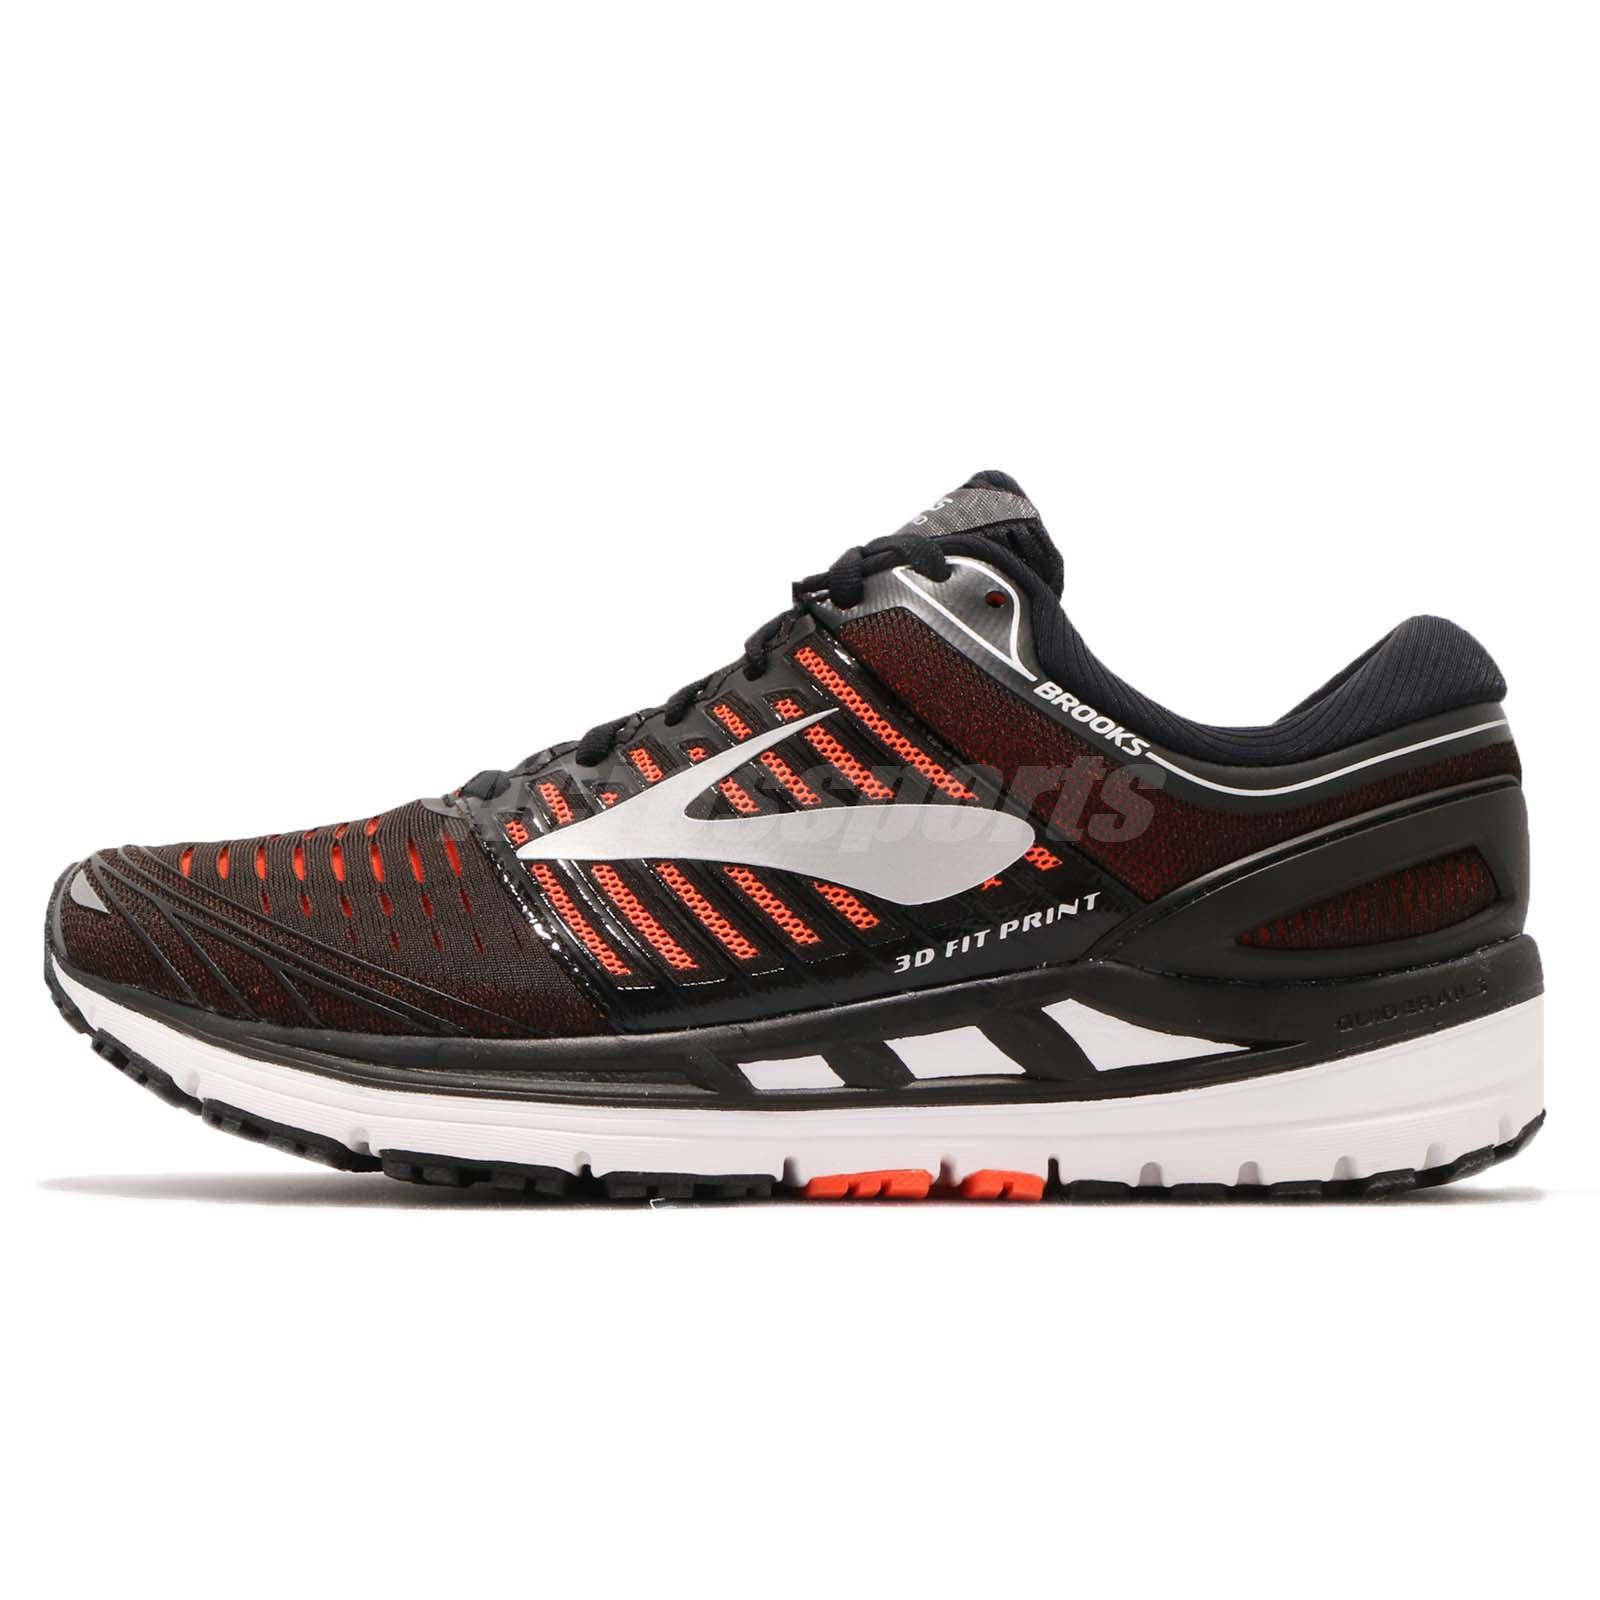 5f6954f99b3f3 Brooks Transcend 5 Black Orange Silver Men Running Shoes Sneakers 110276 1D